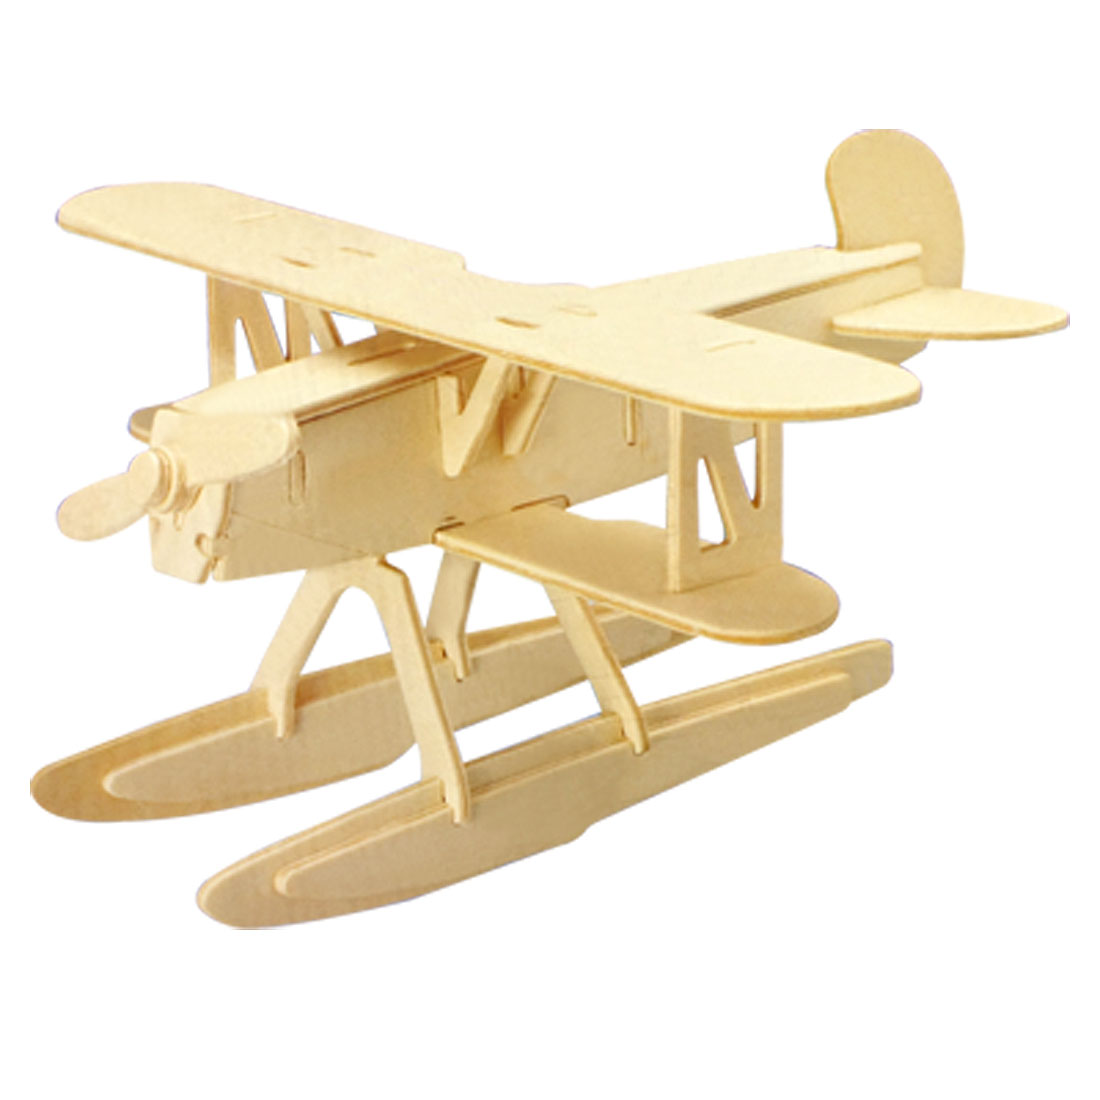 Child 3D Wooden Heinkel HE51 Plane Model Construction Kit Puzzle Toy